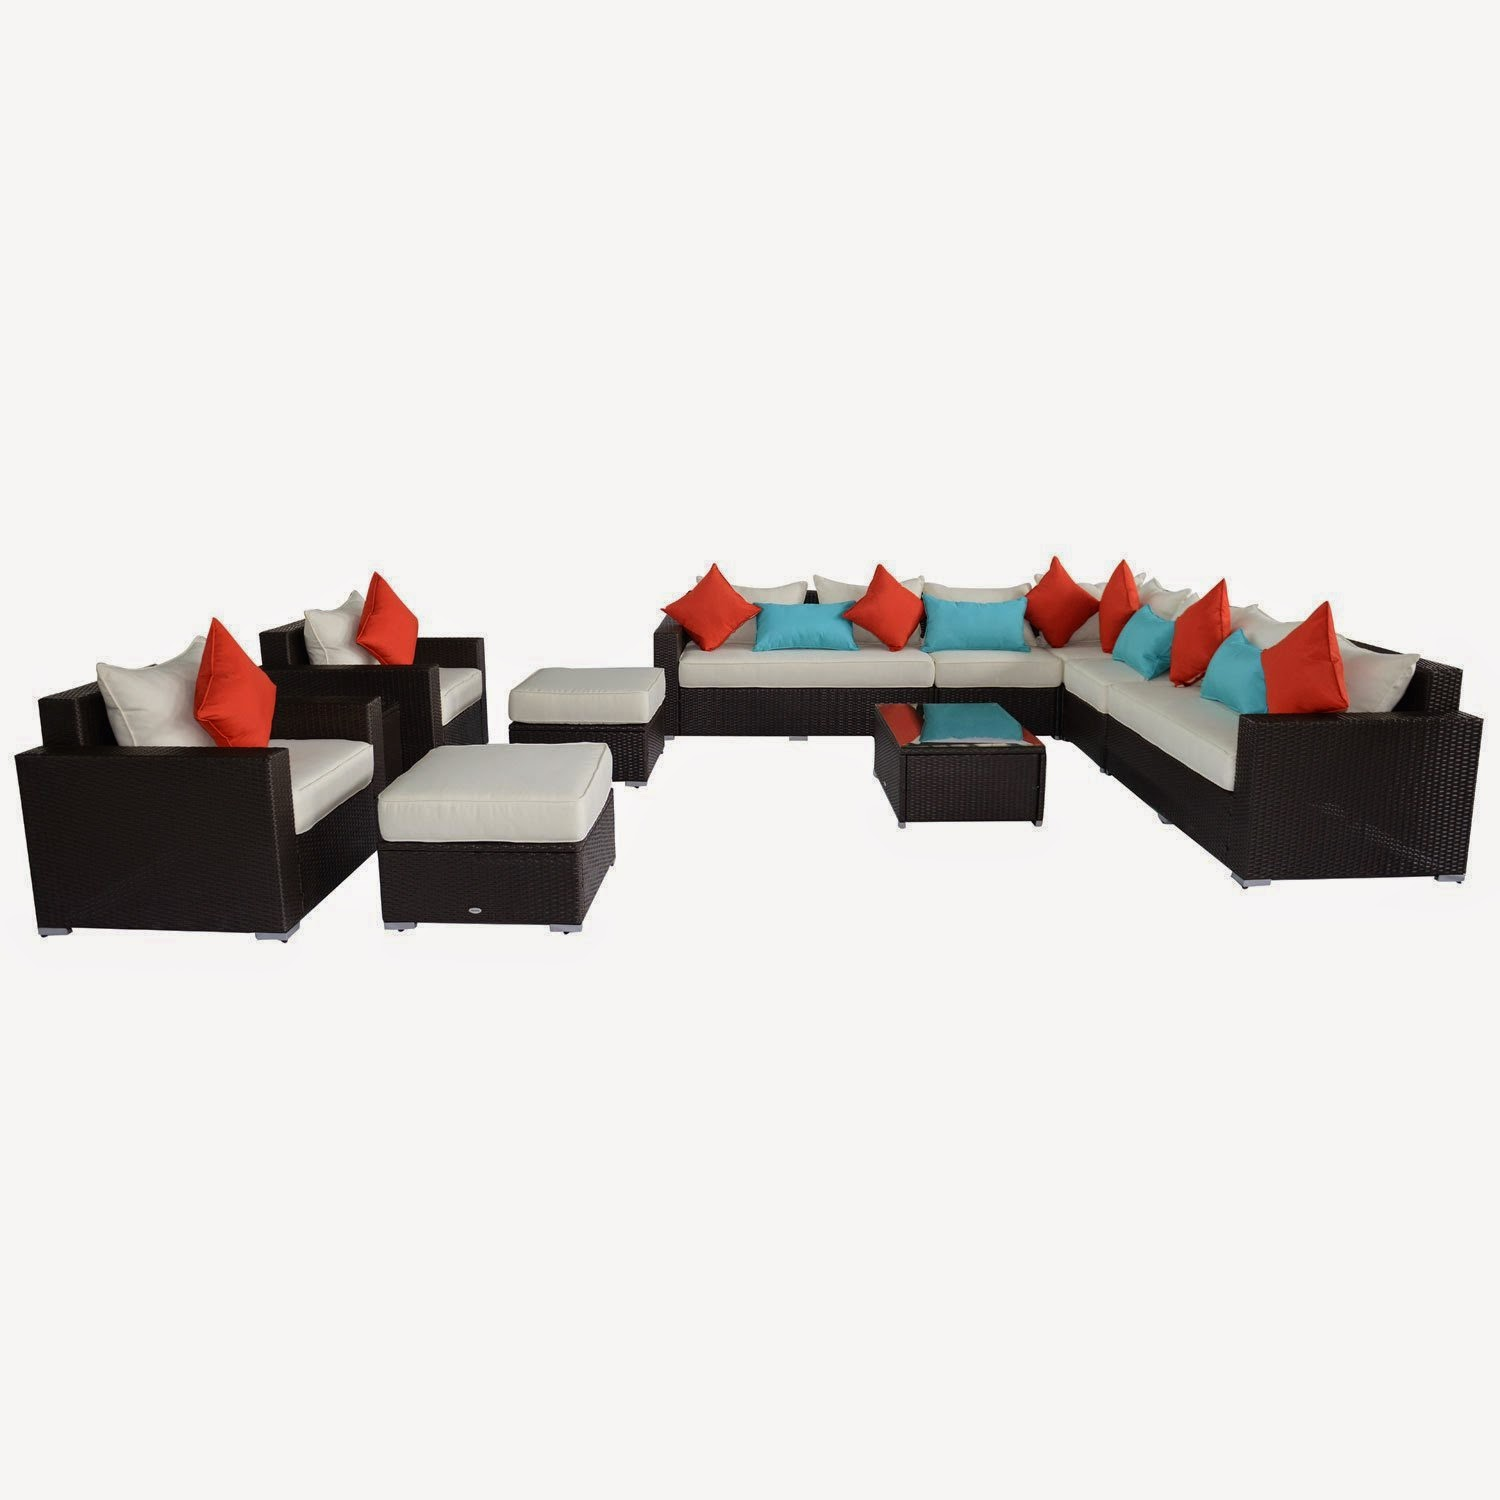 the fantastic real canadian tire sectional patio furniture sofa outdoor pieces outsunny piece white corner couch wicker chairs large throws pit couches lawn home design seater